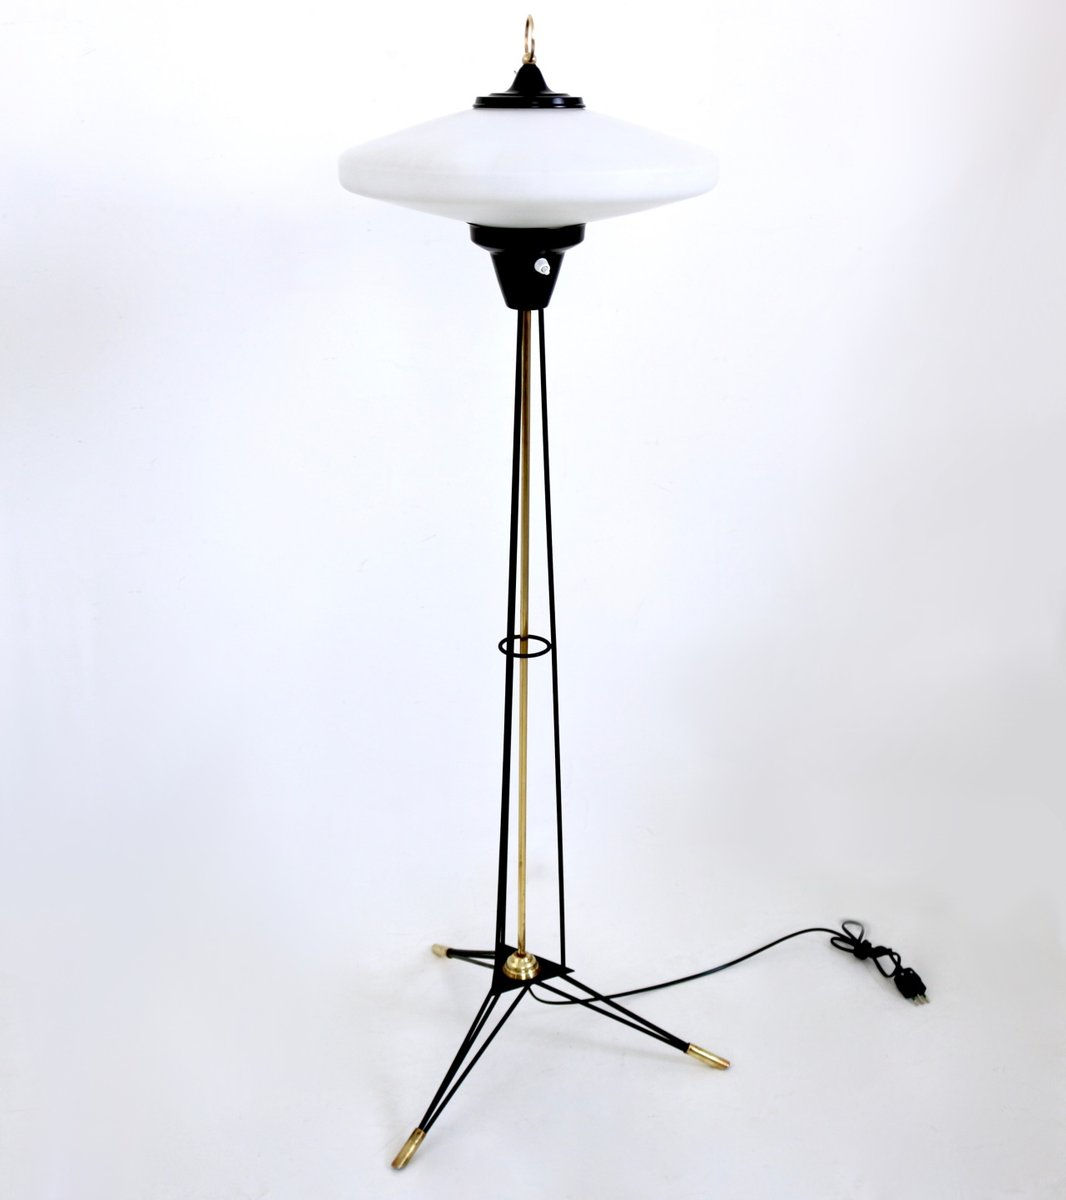 Italian floor lamp with opaline glass shade by stilnovo 1950s for italian floor lamp with opaline glass shade by stilnovo 1950s mozeypictures Images